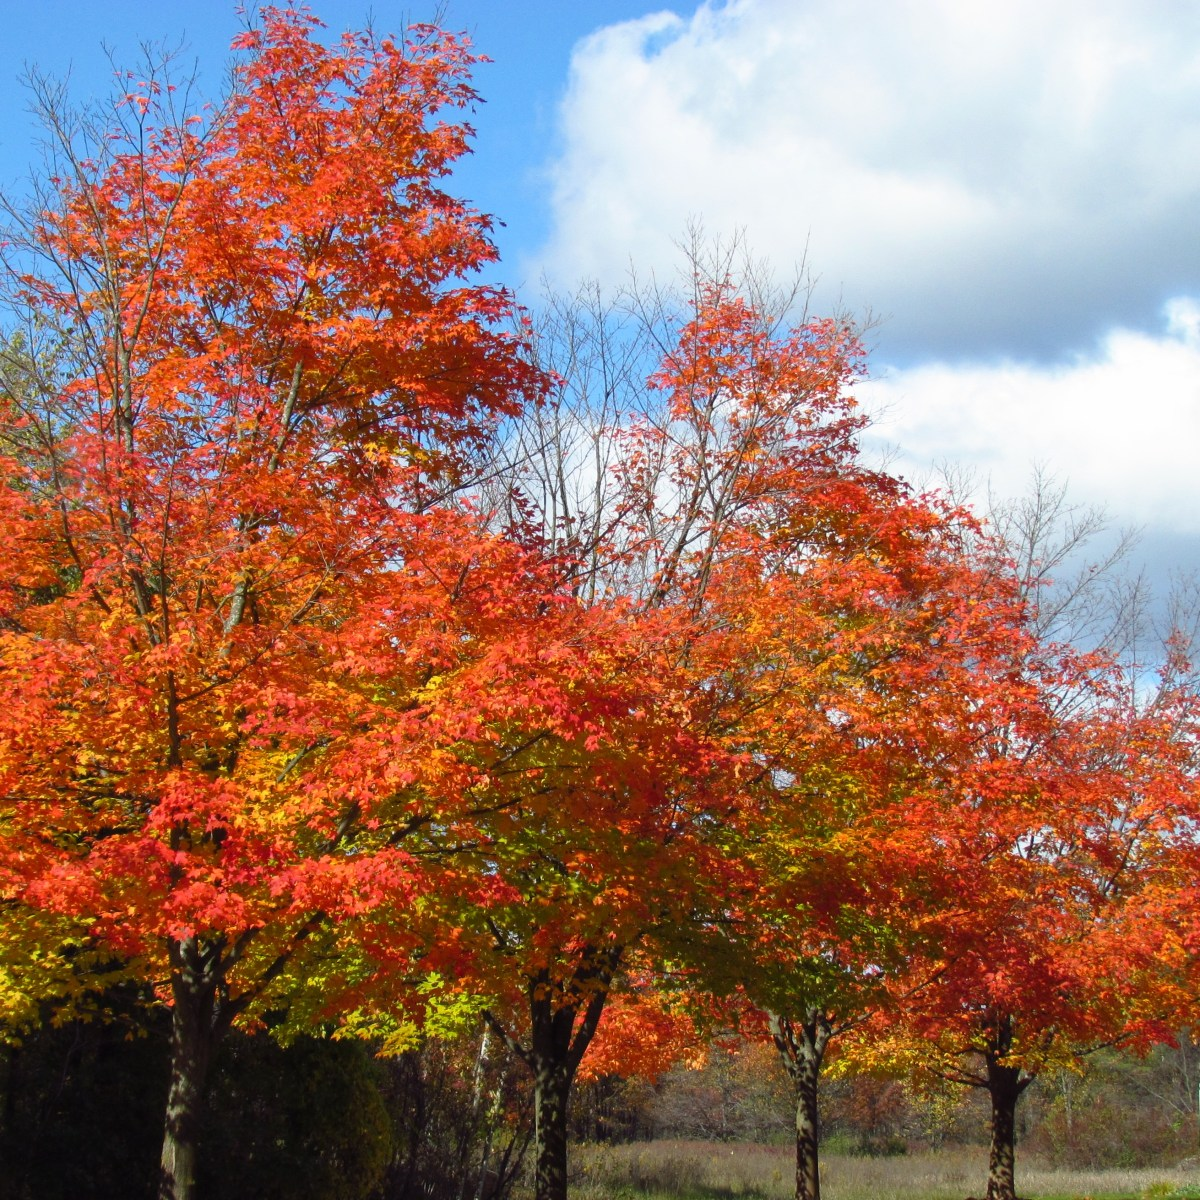 A row of tall trees with orange and yellow autumn leaves